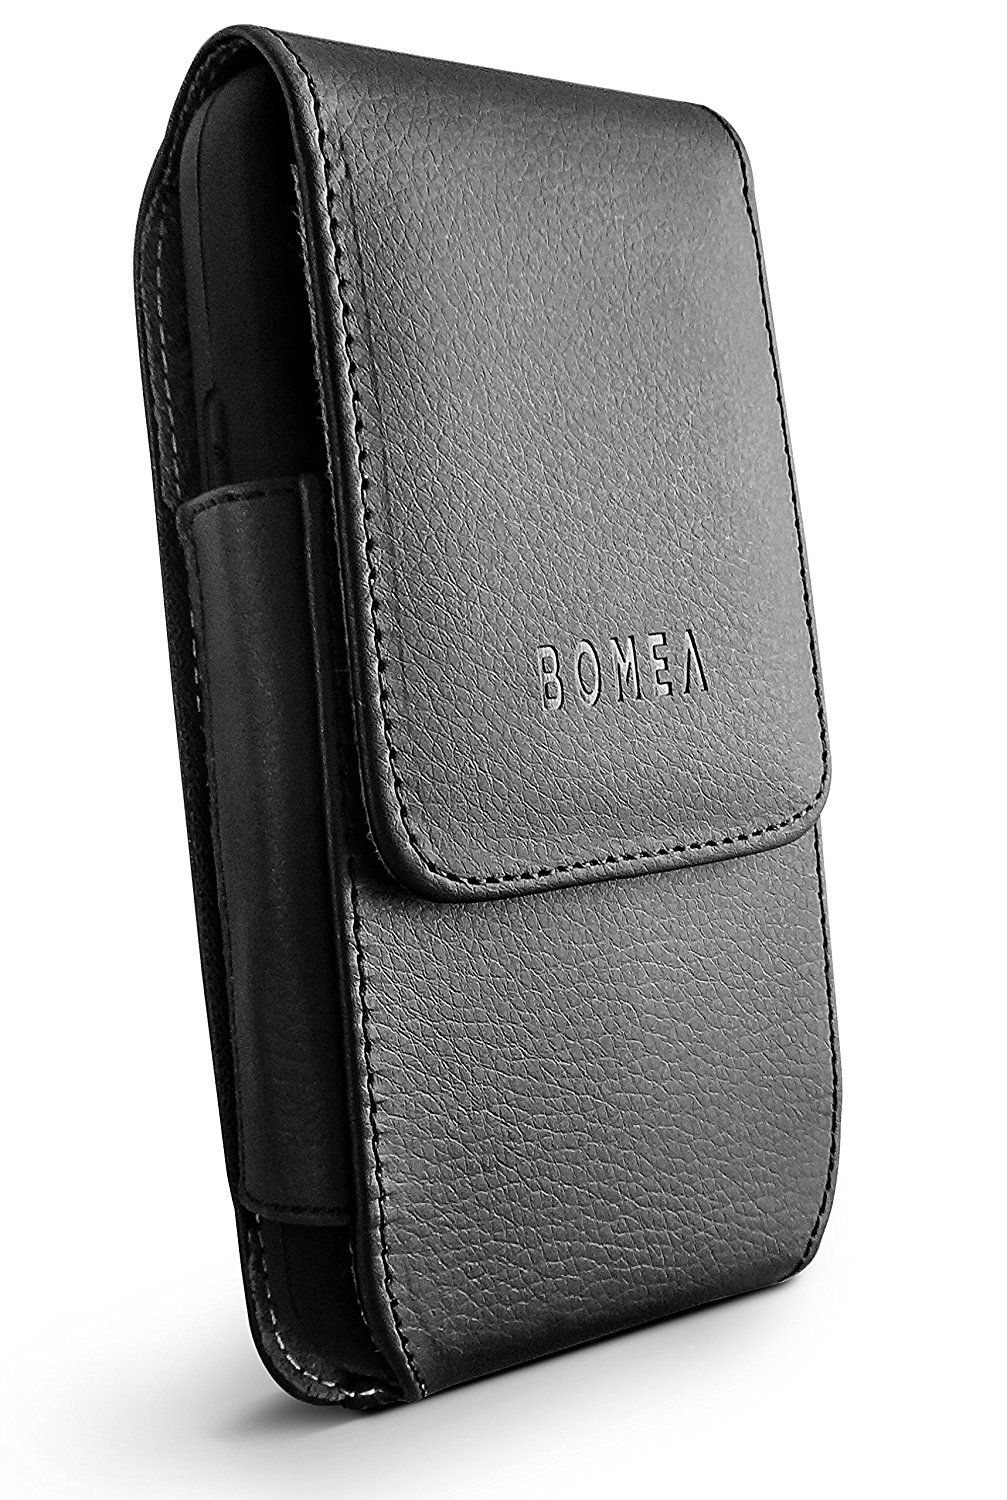 low priced 25a60 5facb iPhone 8 Case, iPhone 7 6 6s Holster, Bomea Leather iPhone 6s 7 8 ...